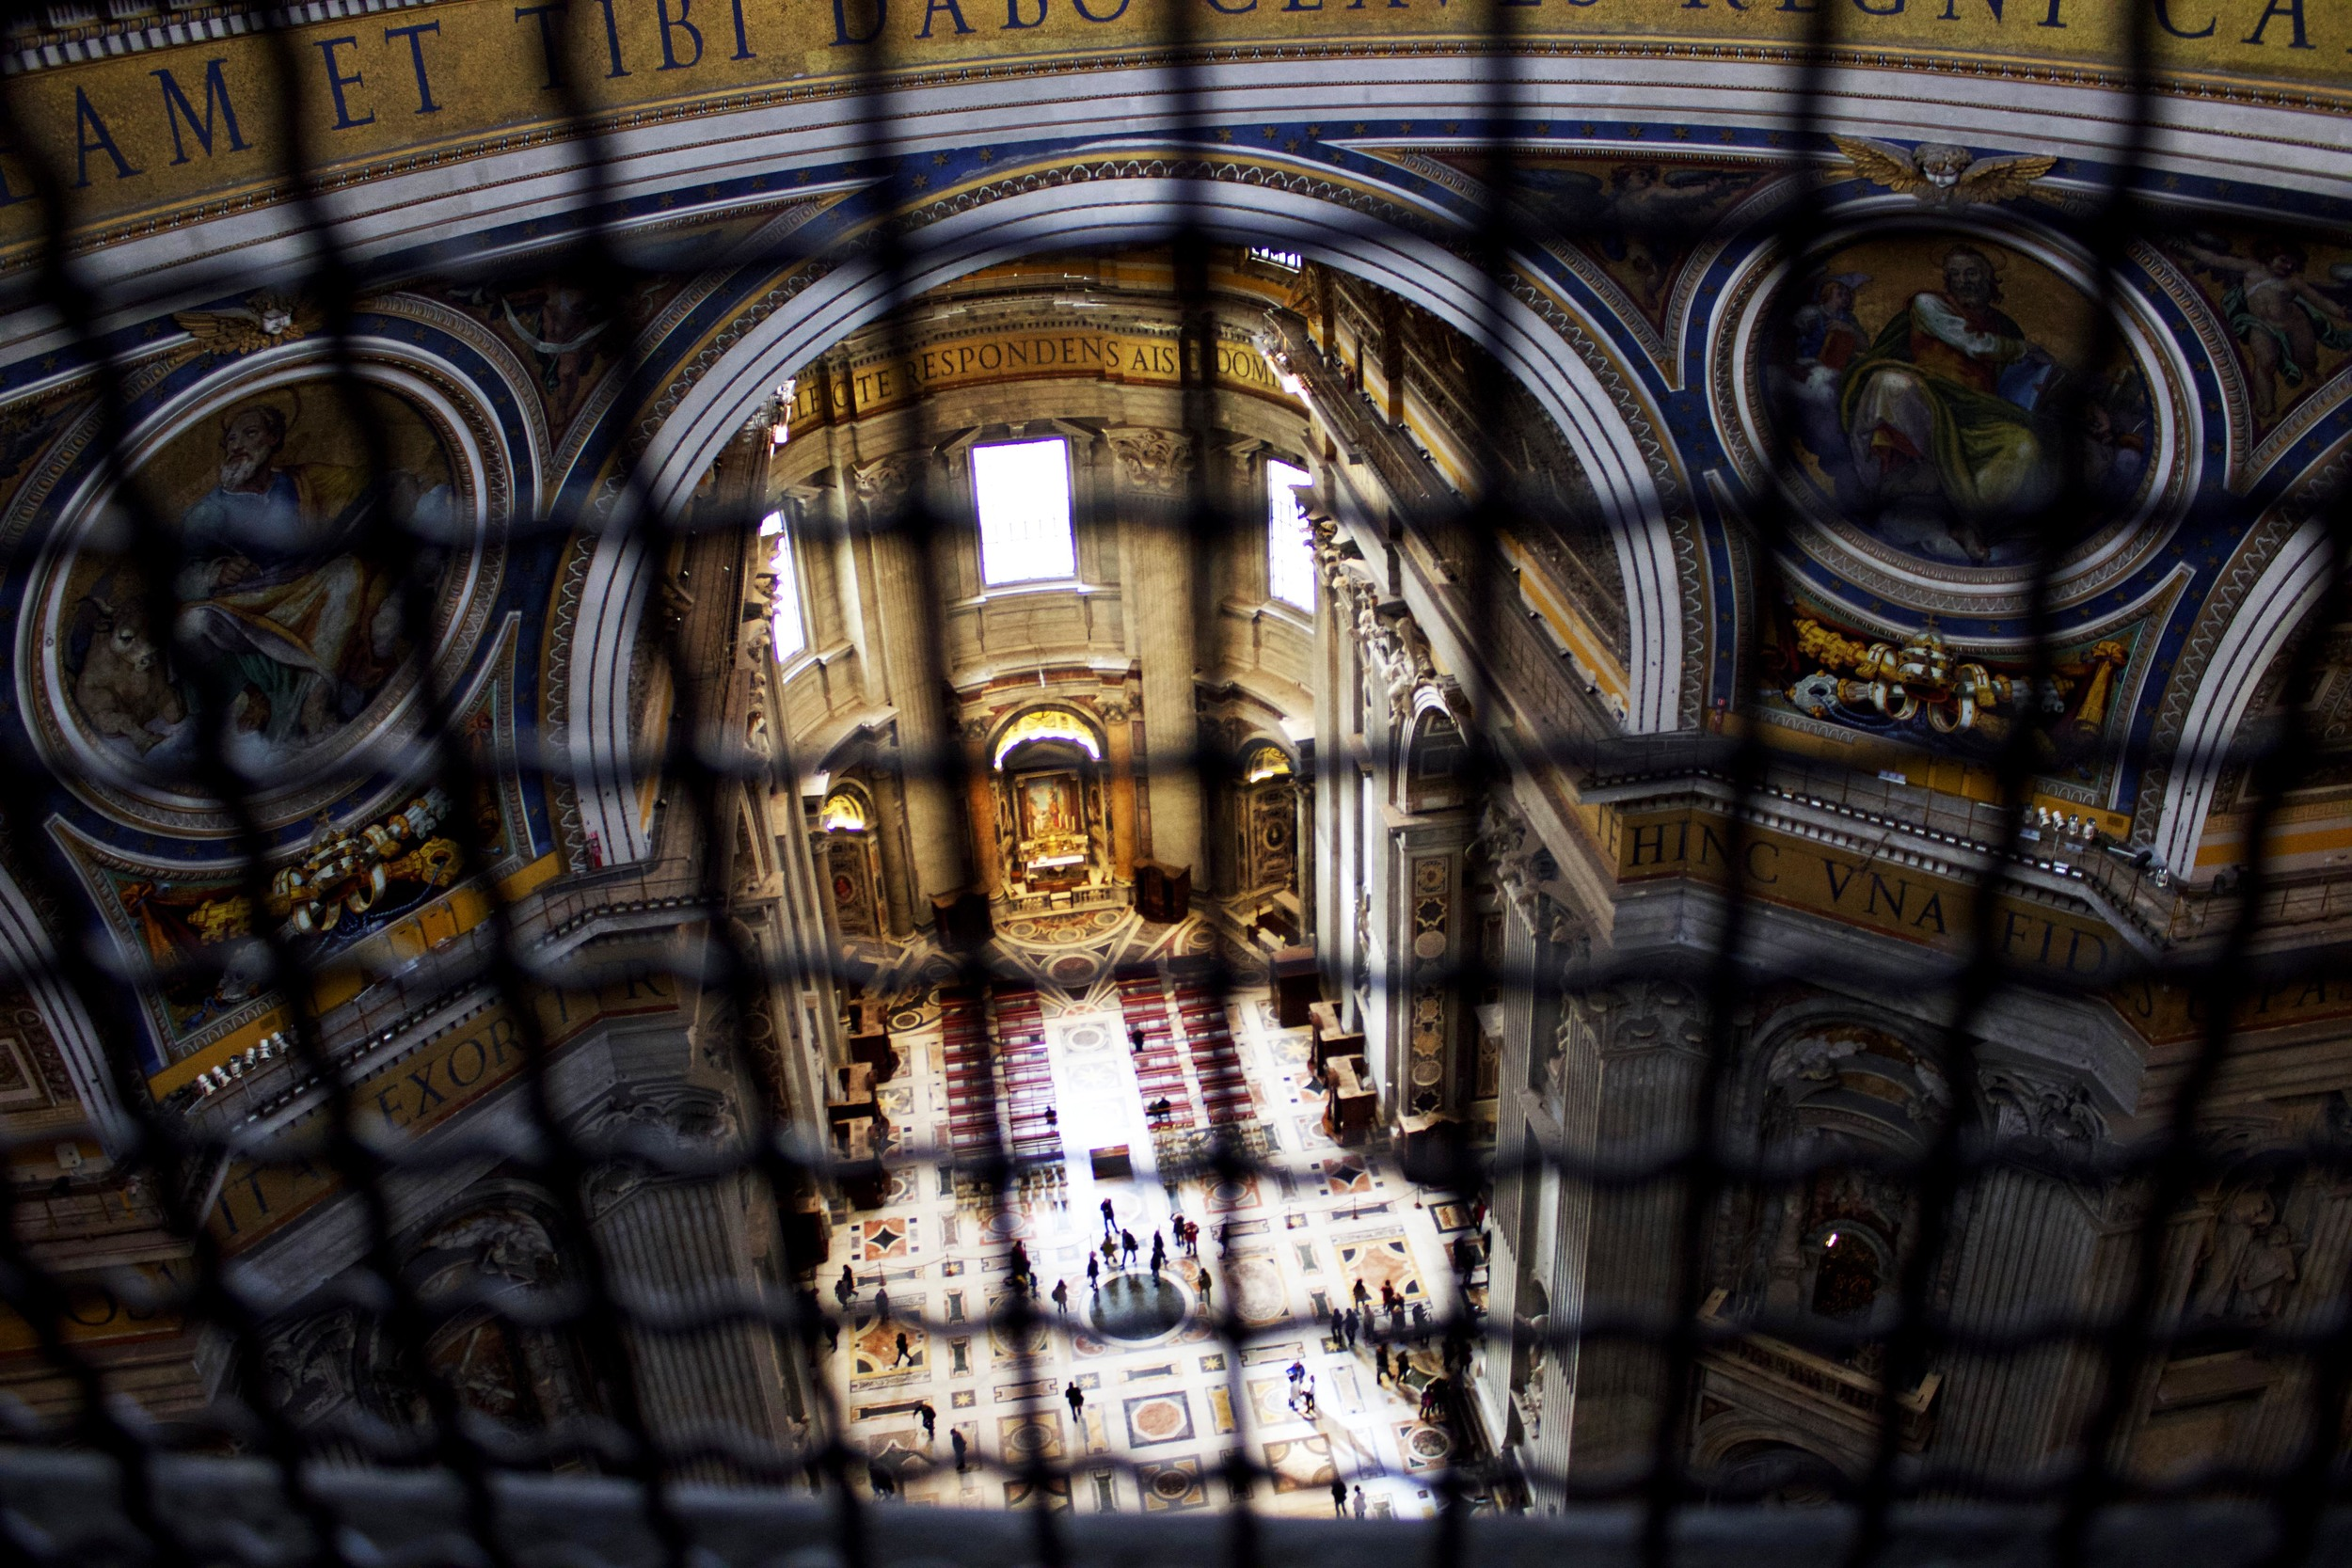 ^ Halfway up the dome! I stopped to take a few photographs looking down onto the ground floor of the basilica. This was a great perspective!